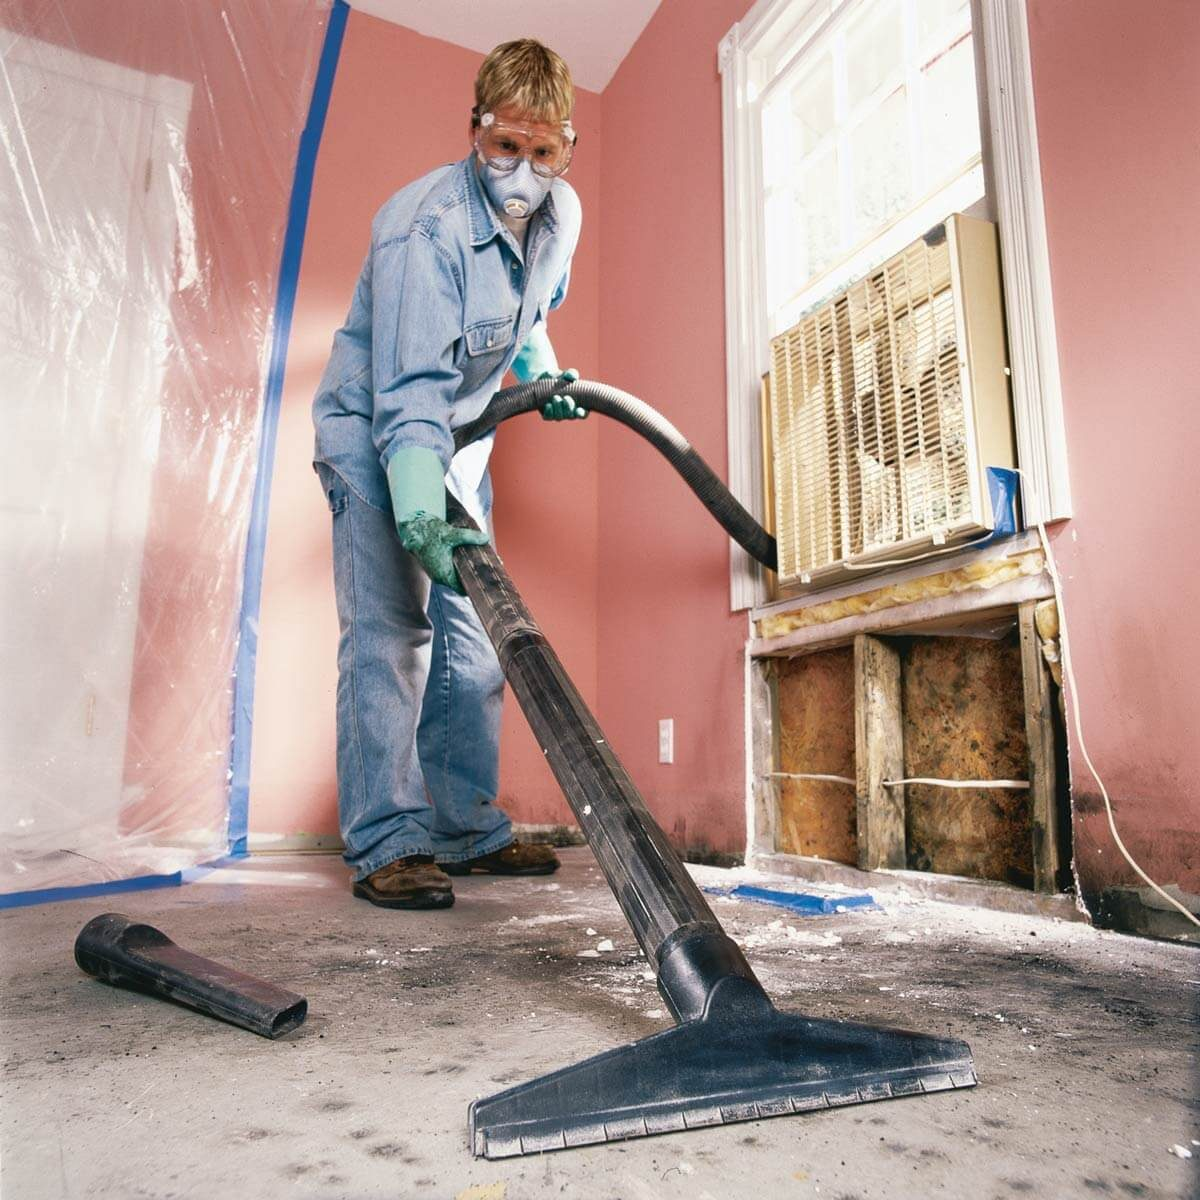 Mold And Mildew Removal The Family Handyman